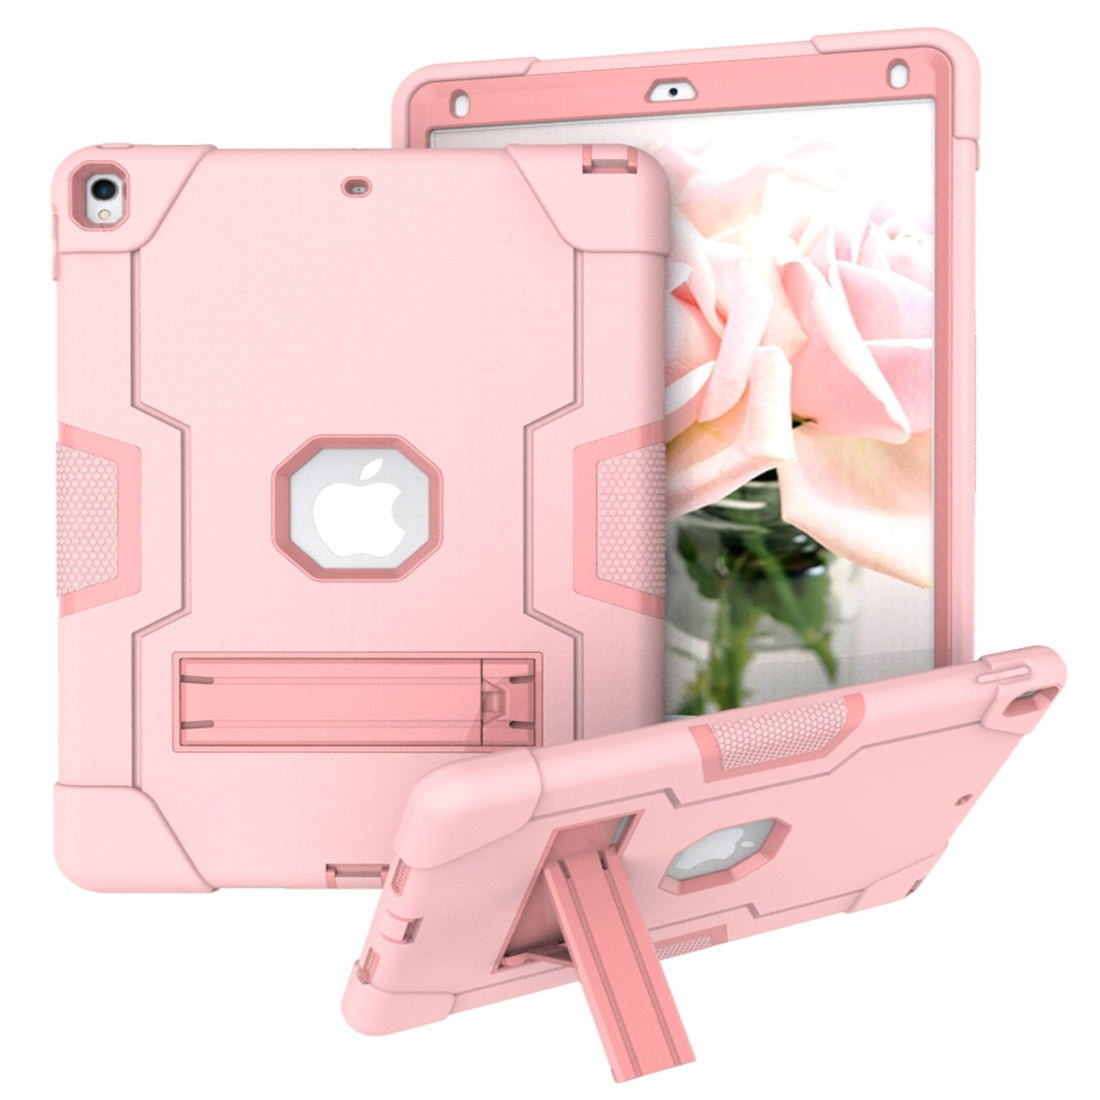 iPad 10.5 Case Contrasting Color Tough Durable Armor Case (Rose Gold)